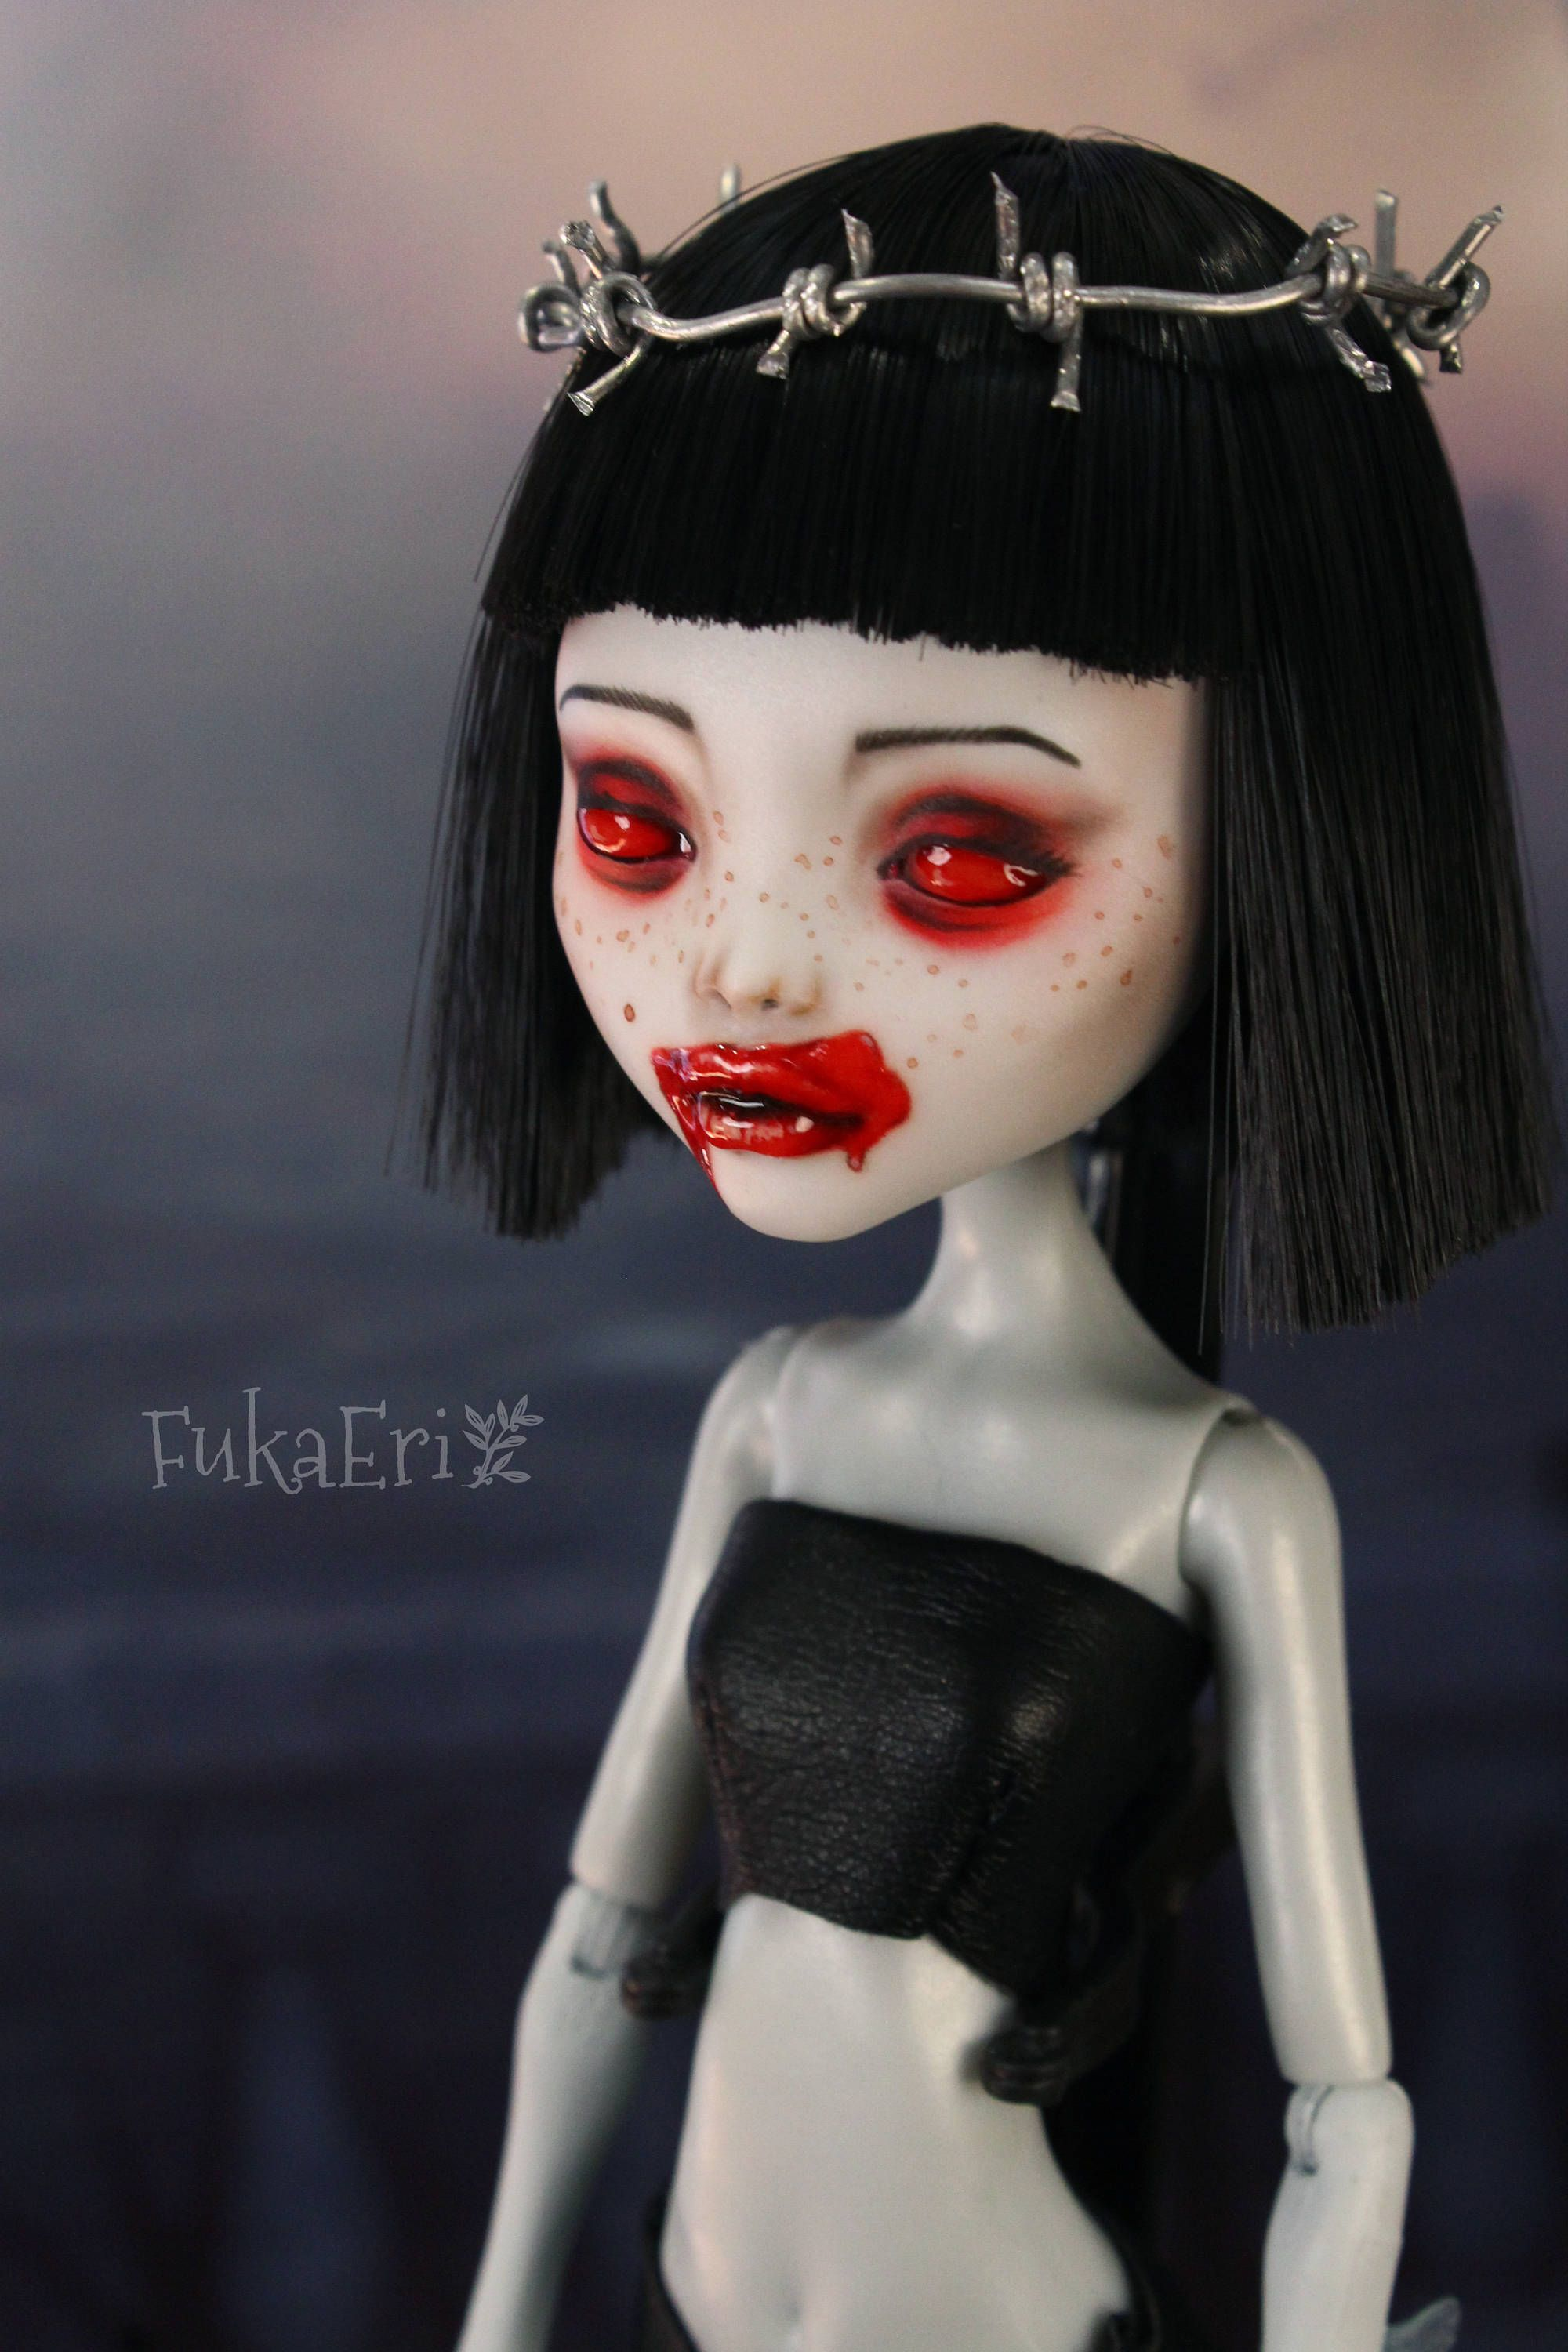 This Is Customized Monster High Doll I Removed Her Factory Hair